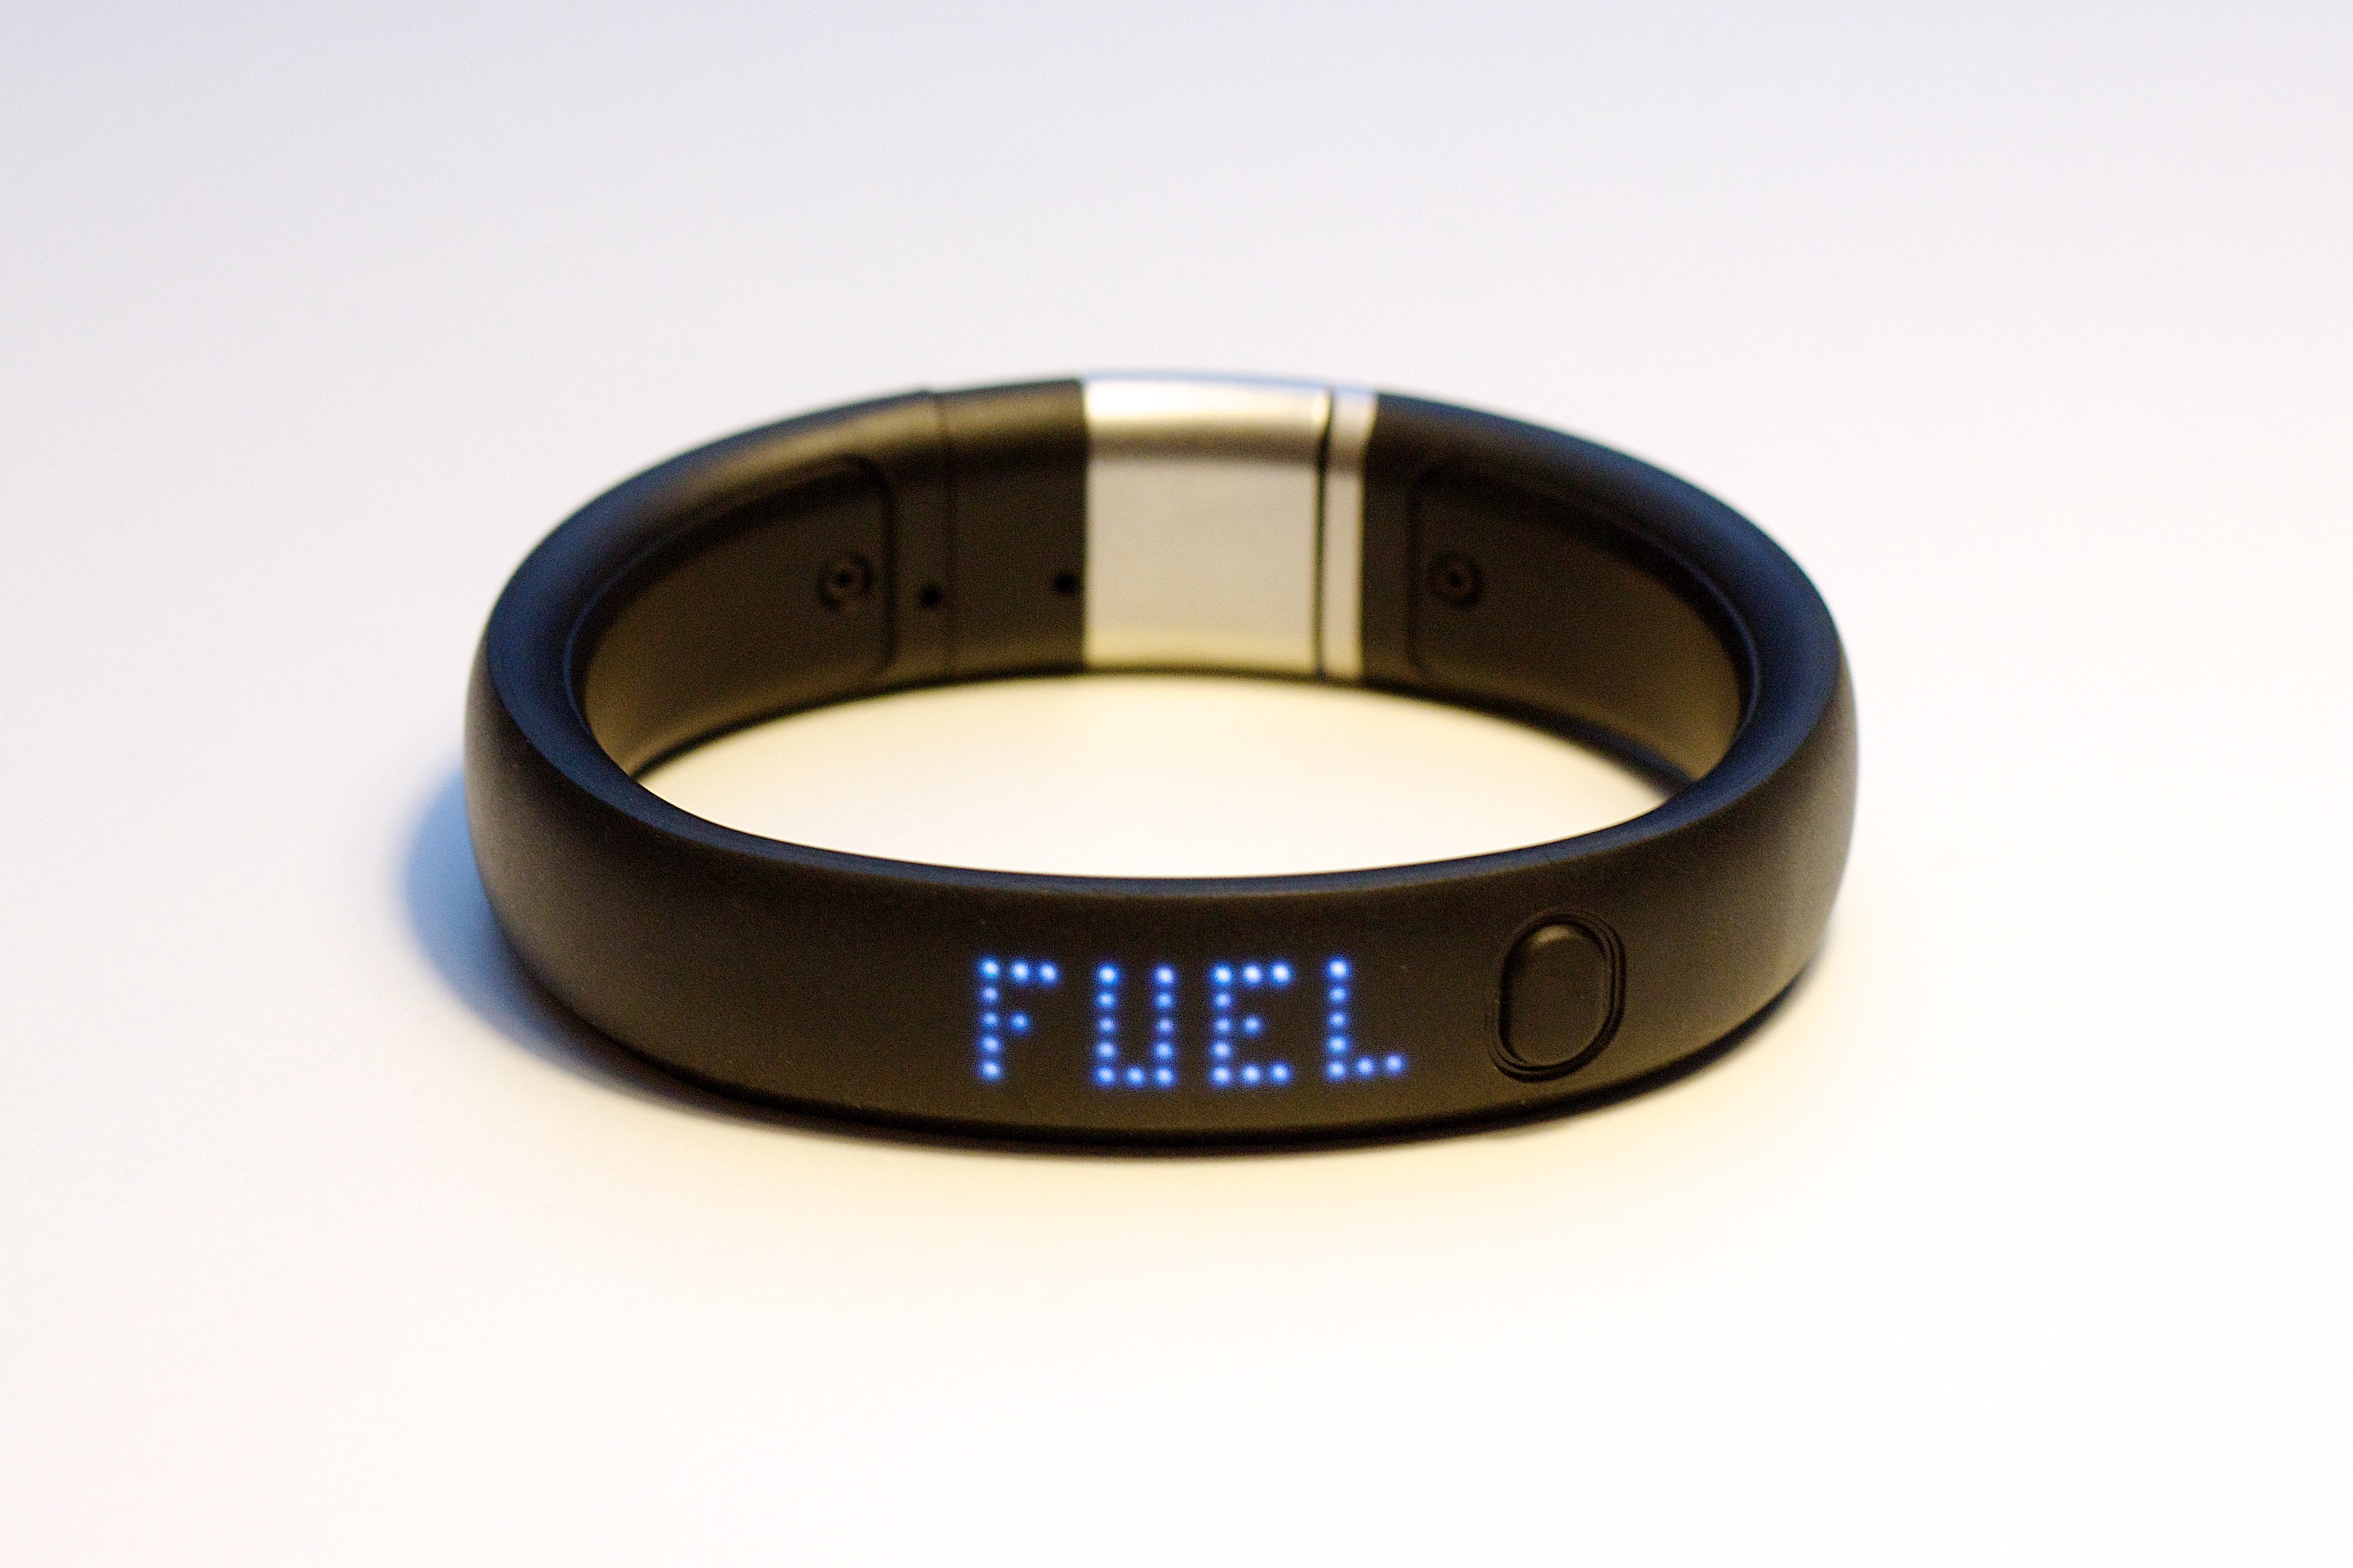 Health and Fitness Trackers